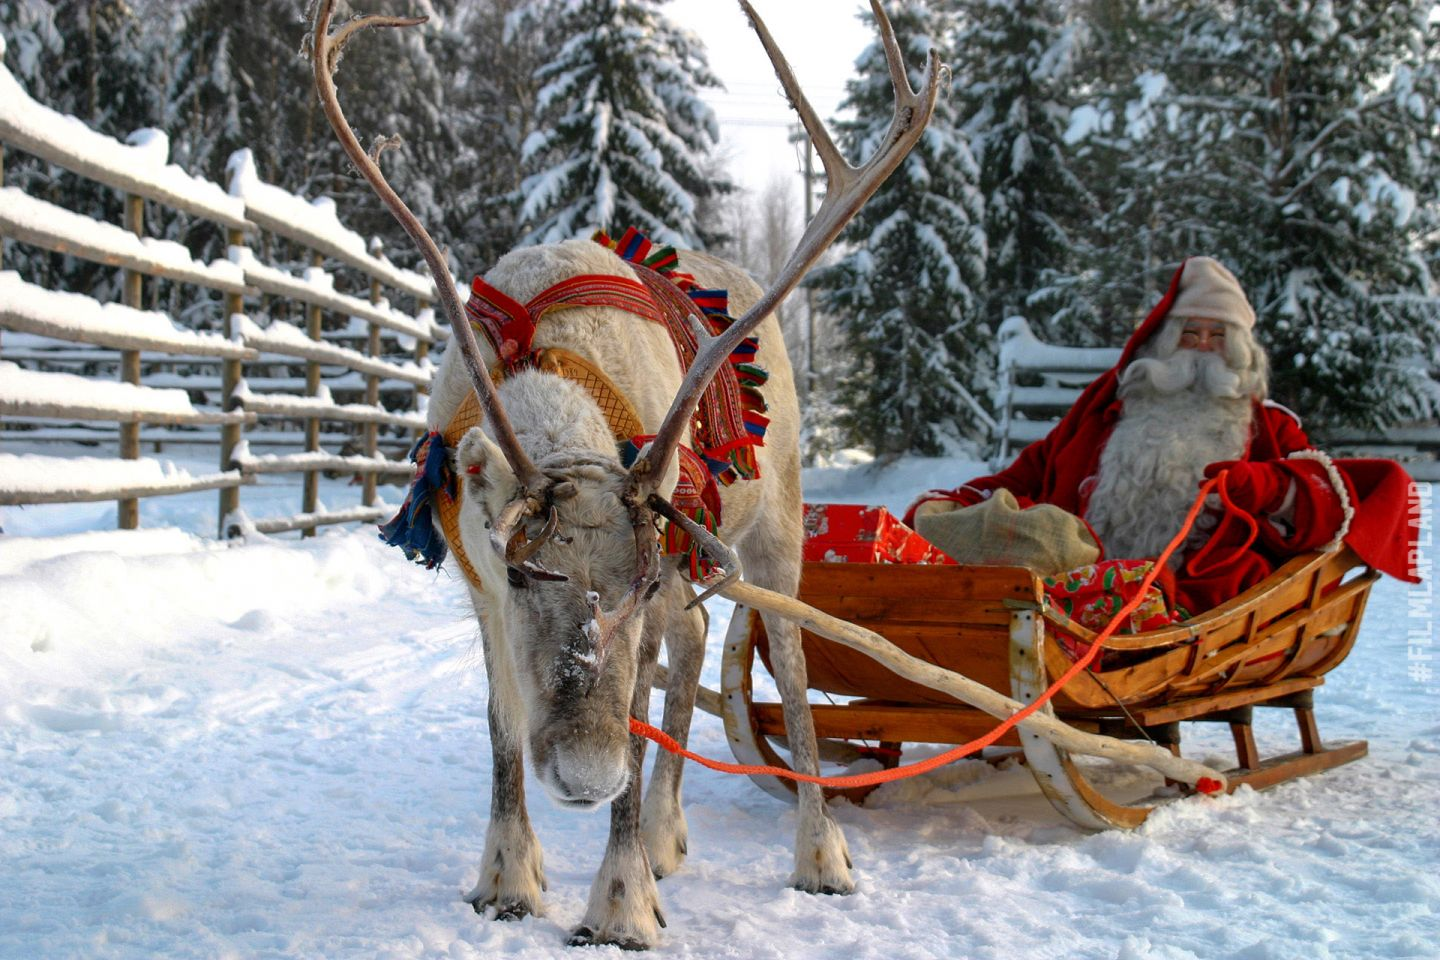 Going for a reindeer sleigh ride with Santa in Rovaniemi, Finland